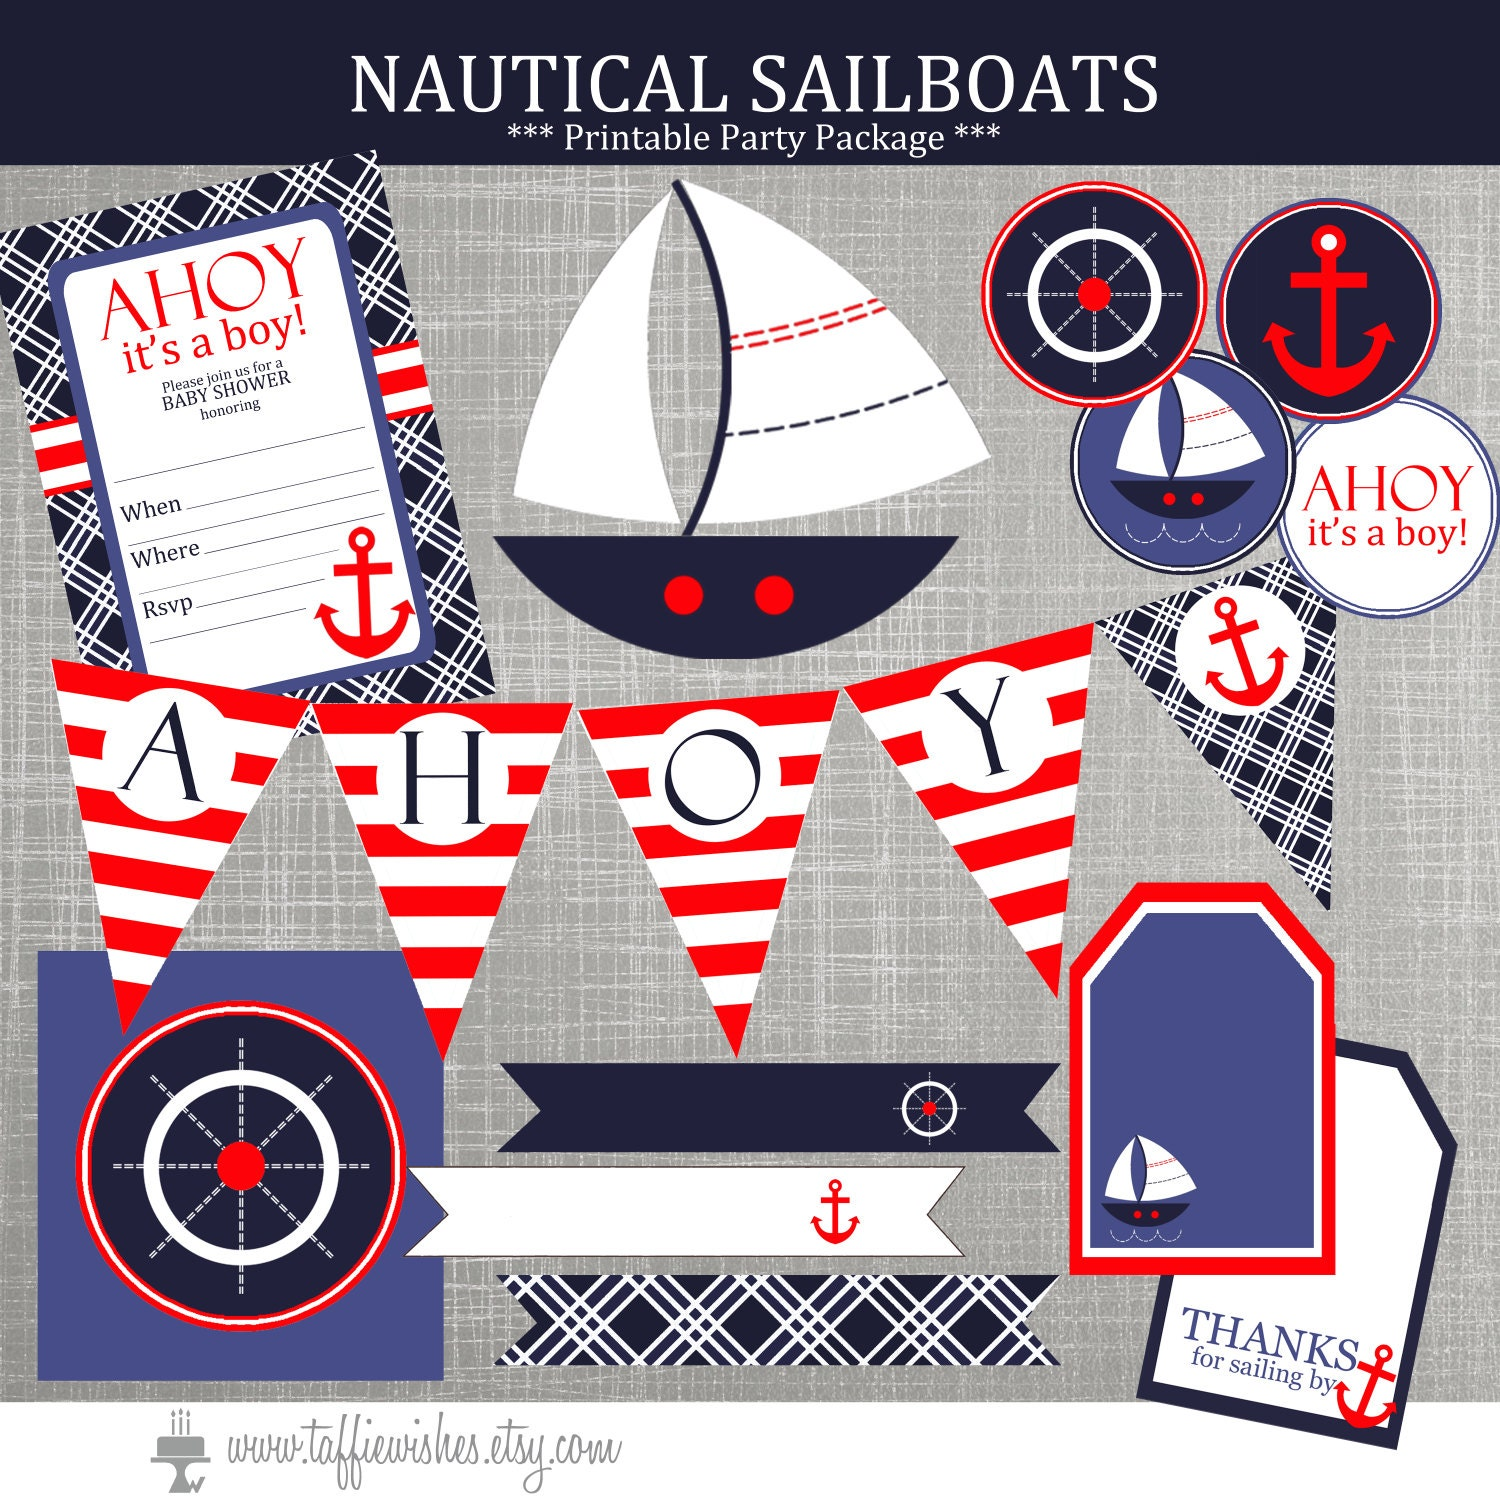 h party decor home best nautical decorations perfect cheap ideal